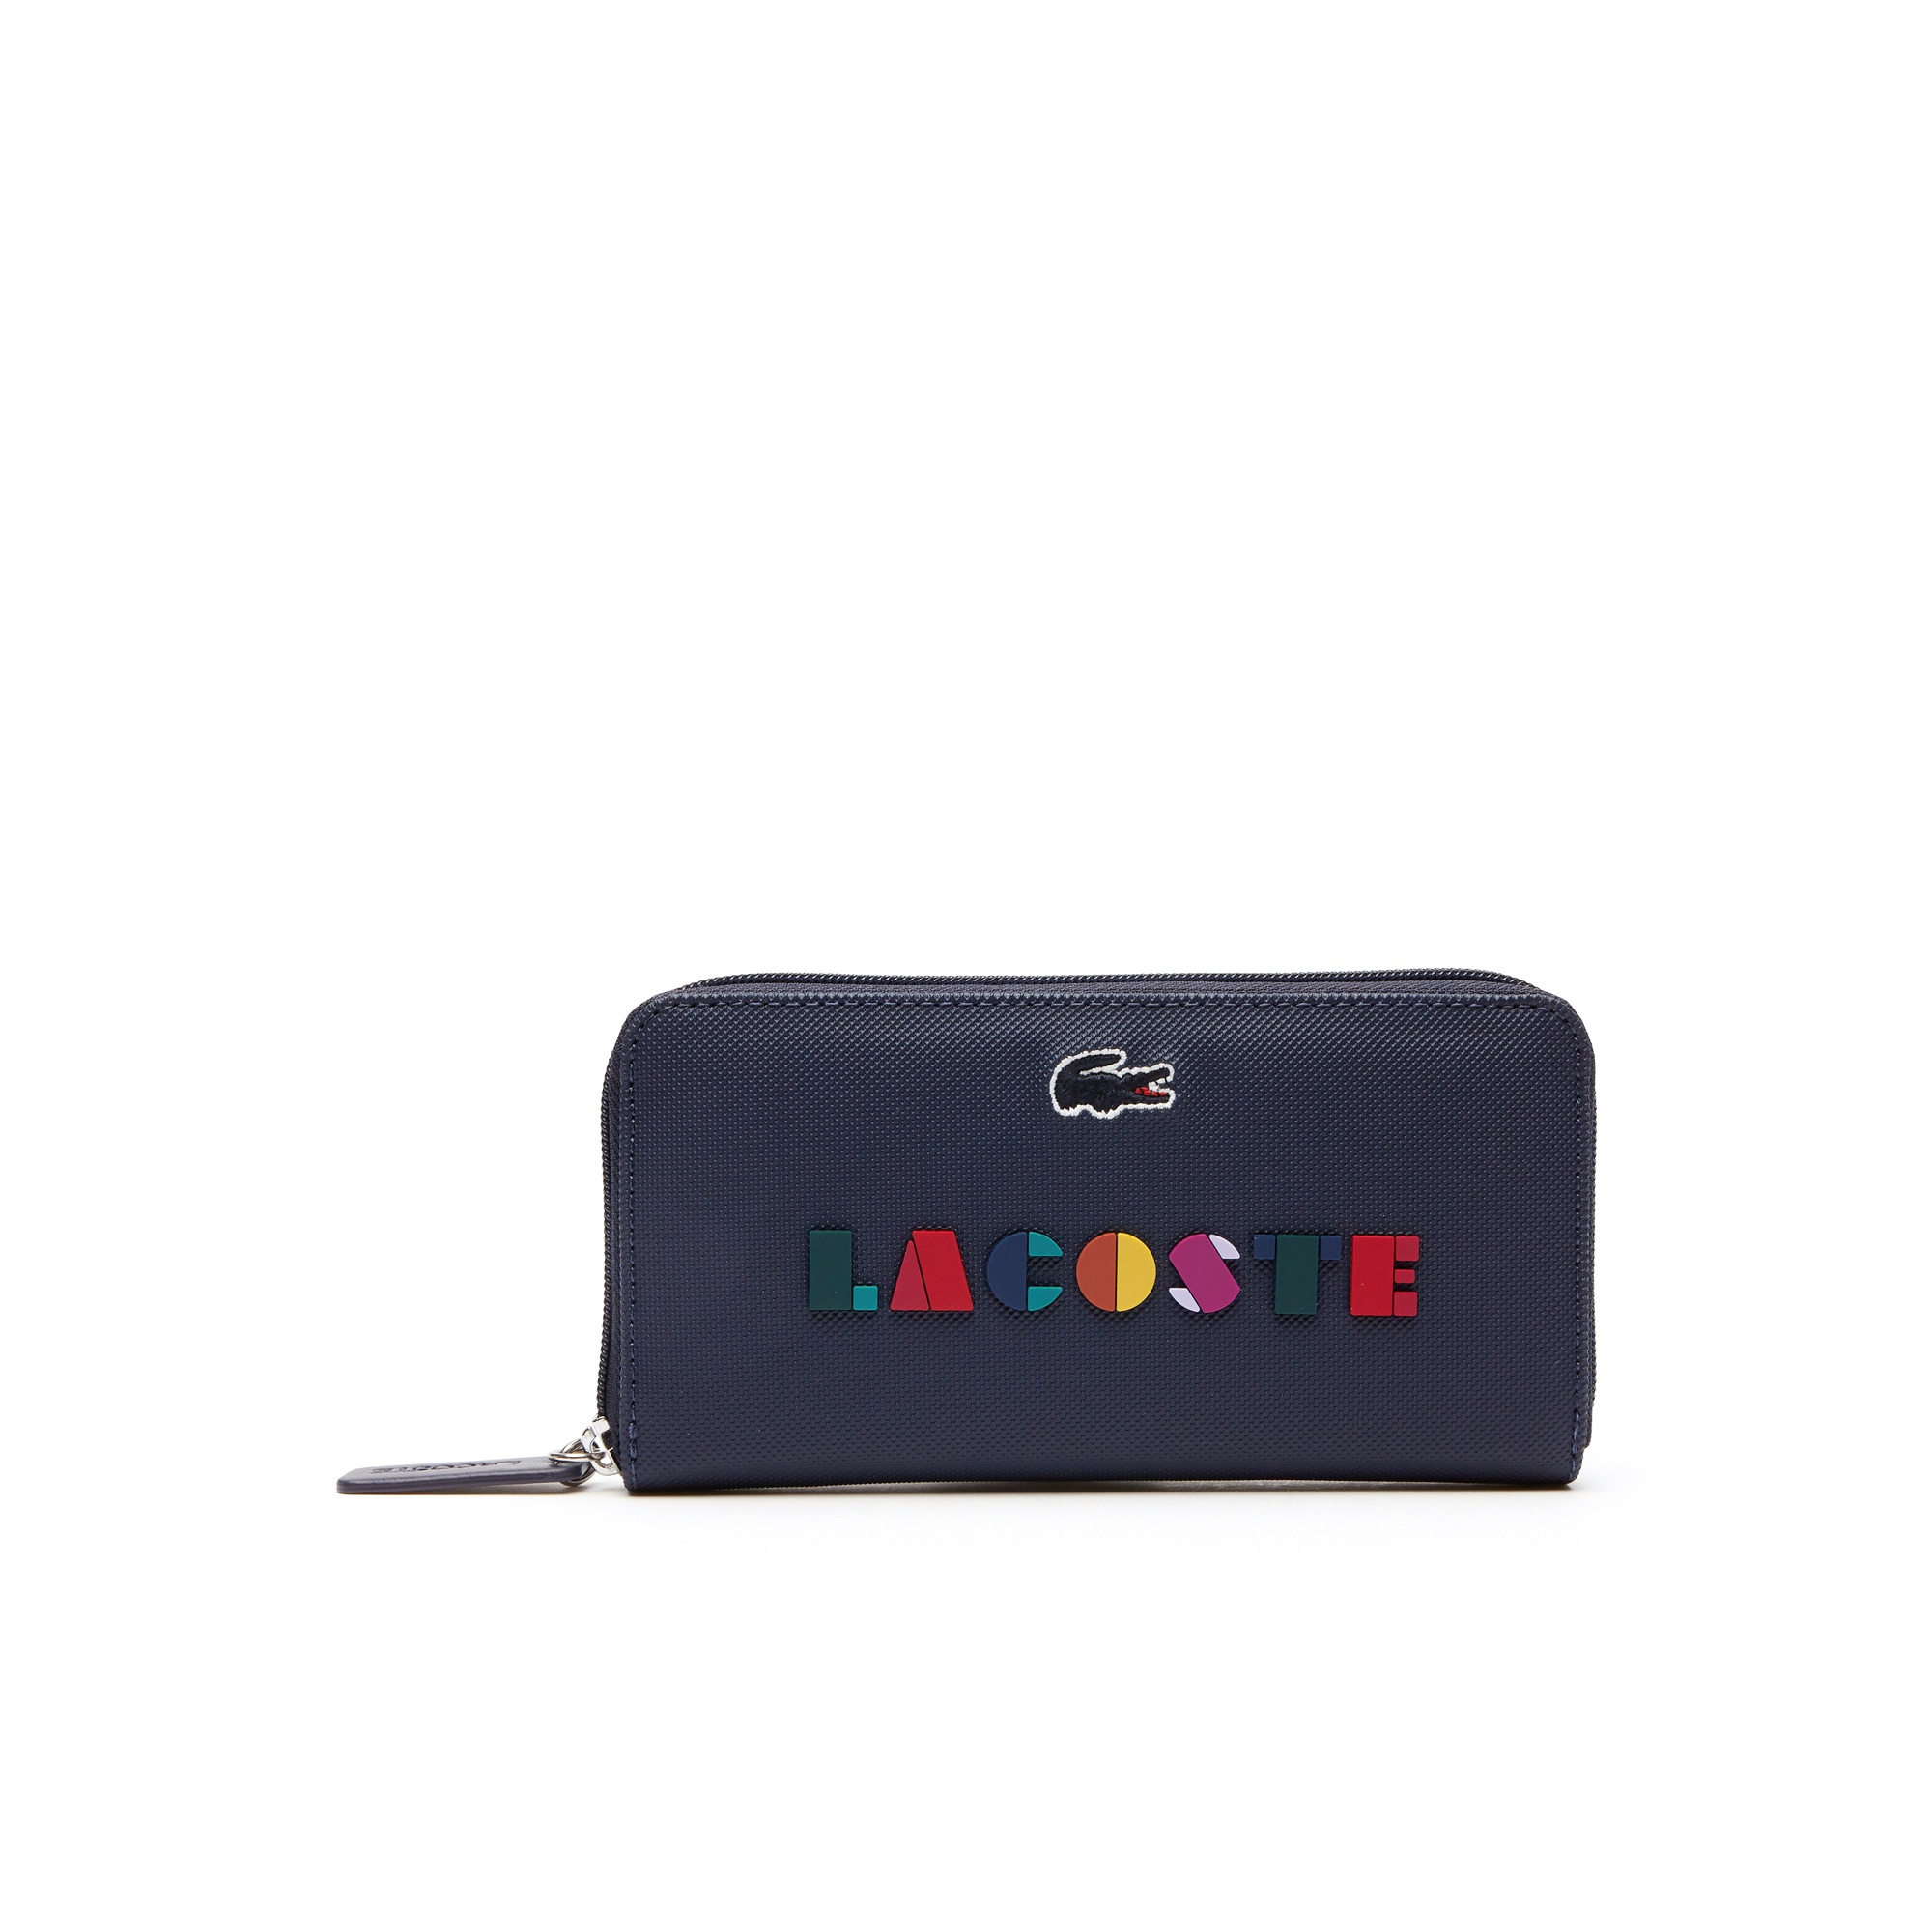 más baratas a148b bef42 L.12.12 Small Leather Goods | Leather Goods | LACOSTE